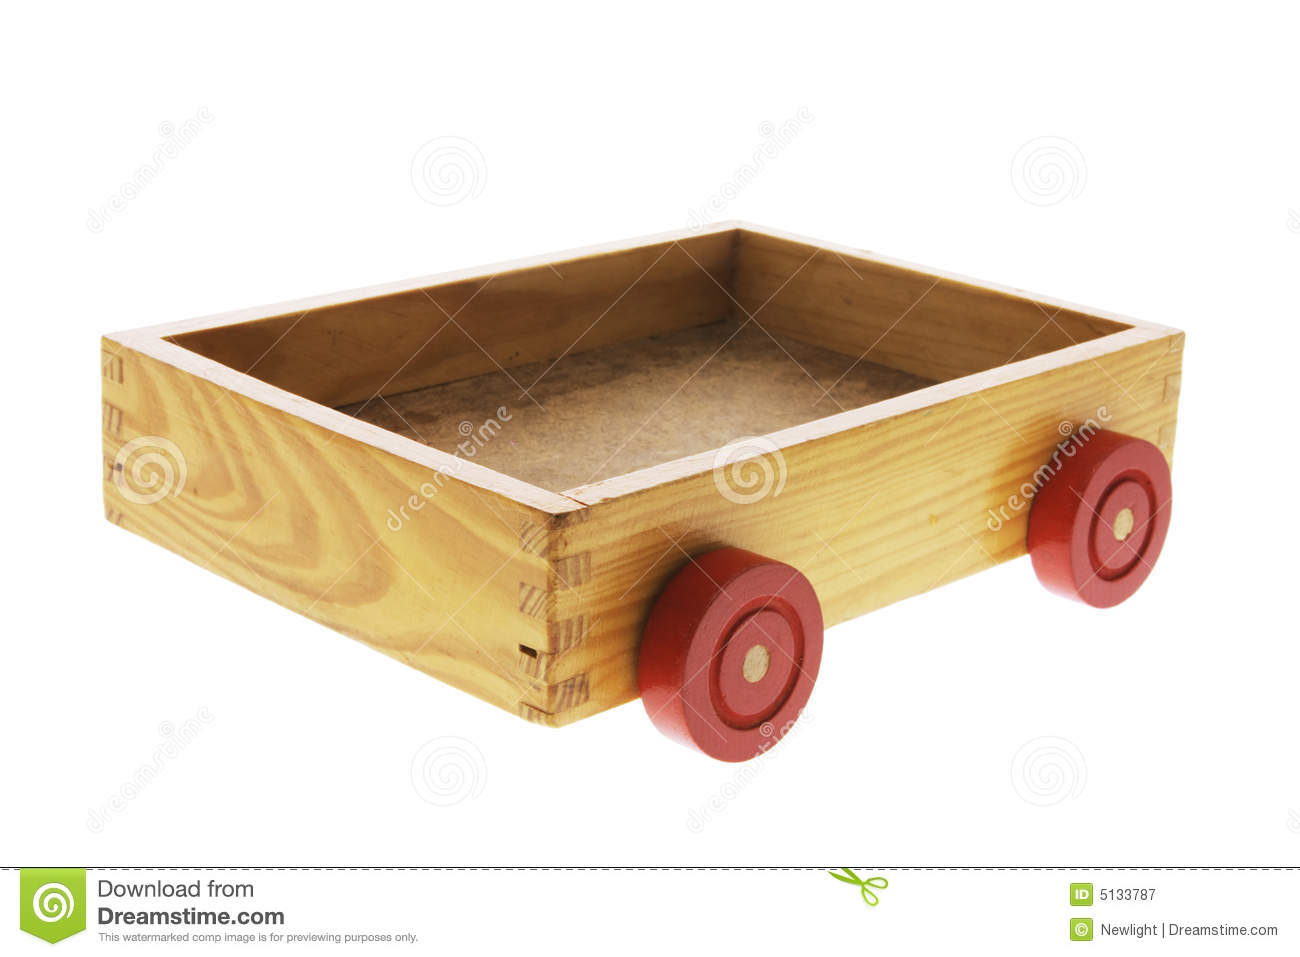 Wooden Box with Wheels on White Background.